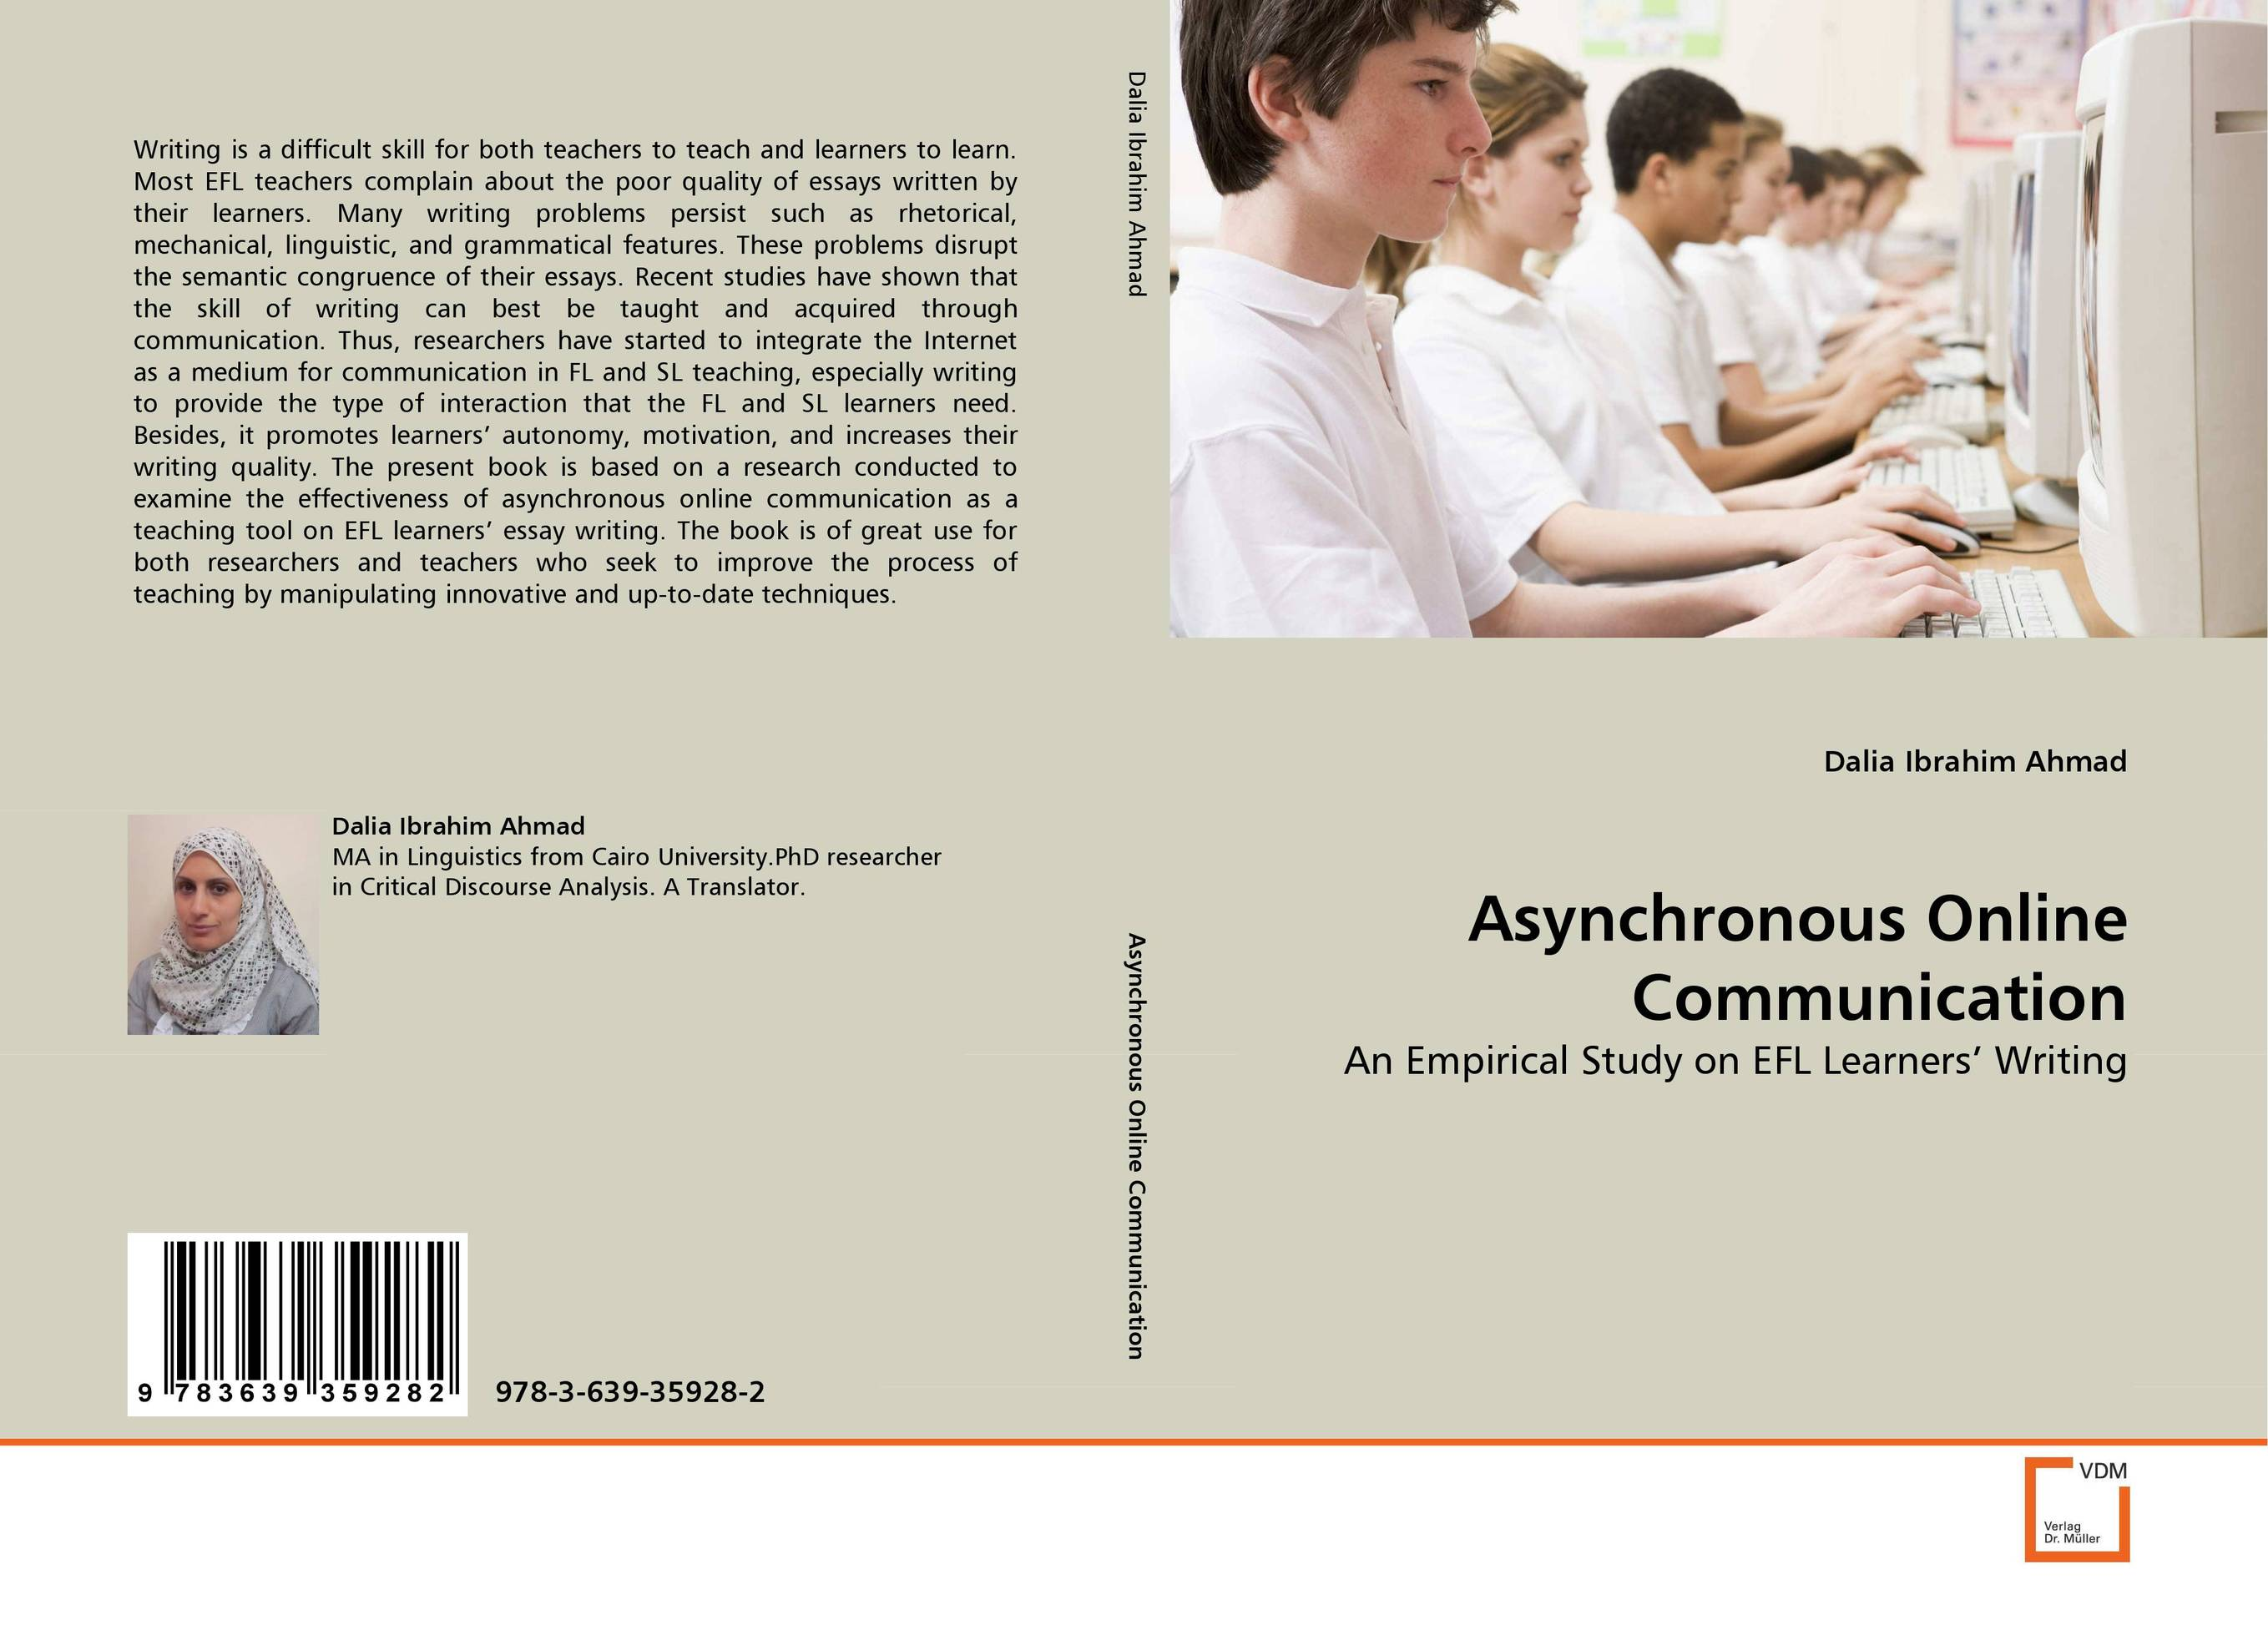 Asynchronous Online Communication